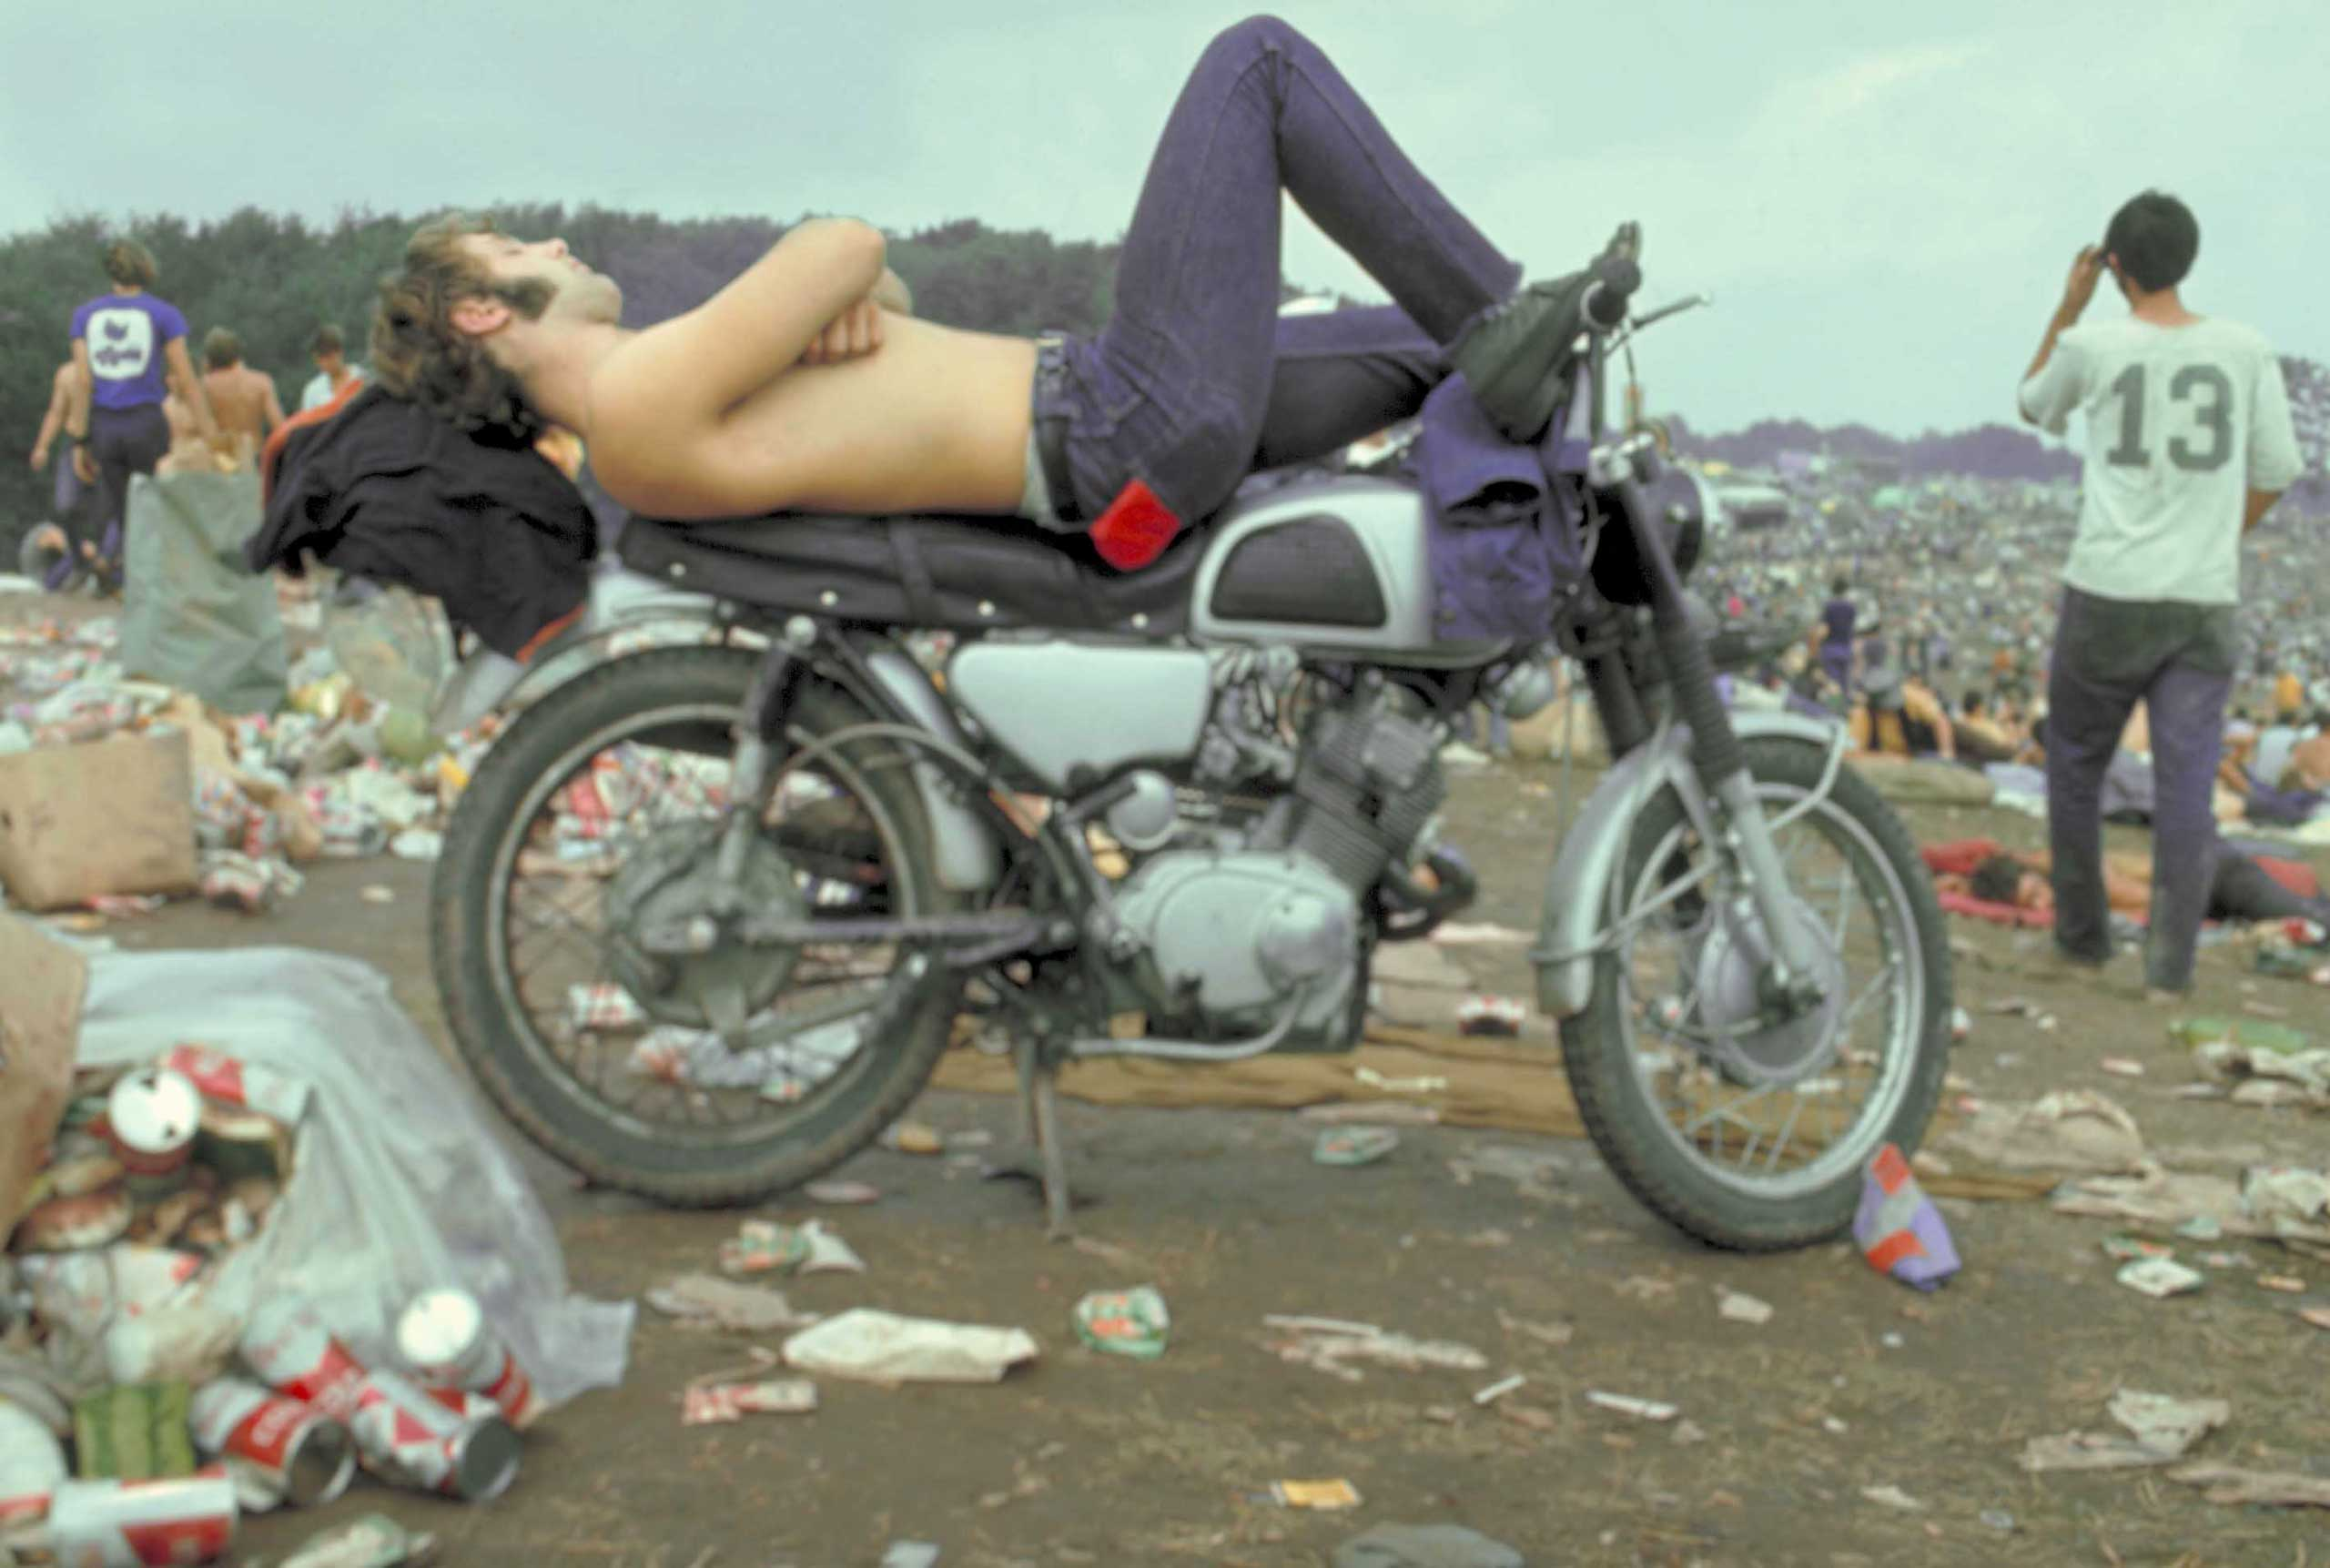 Not published in LIFE. Woodstock Music & Art Fair, August 1969.